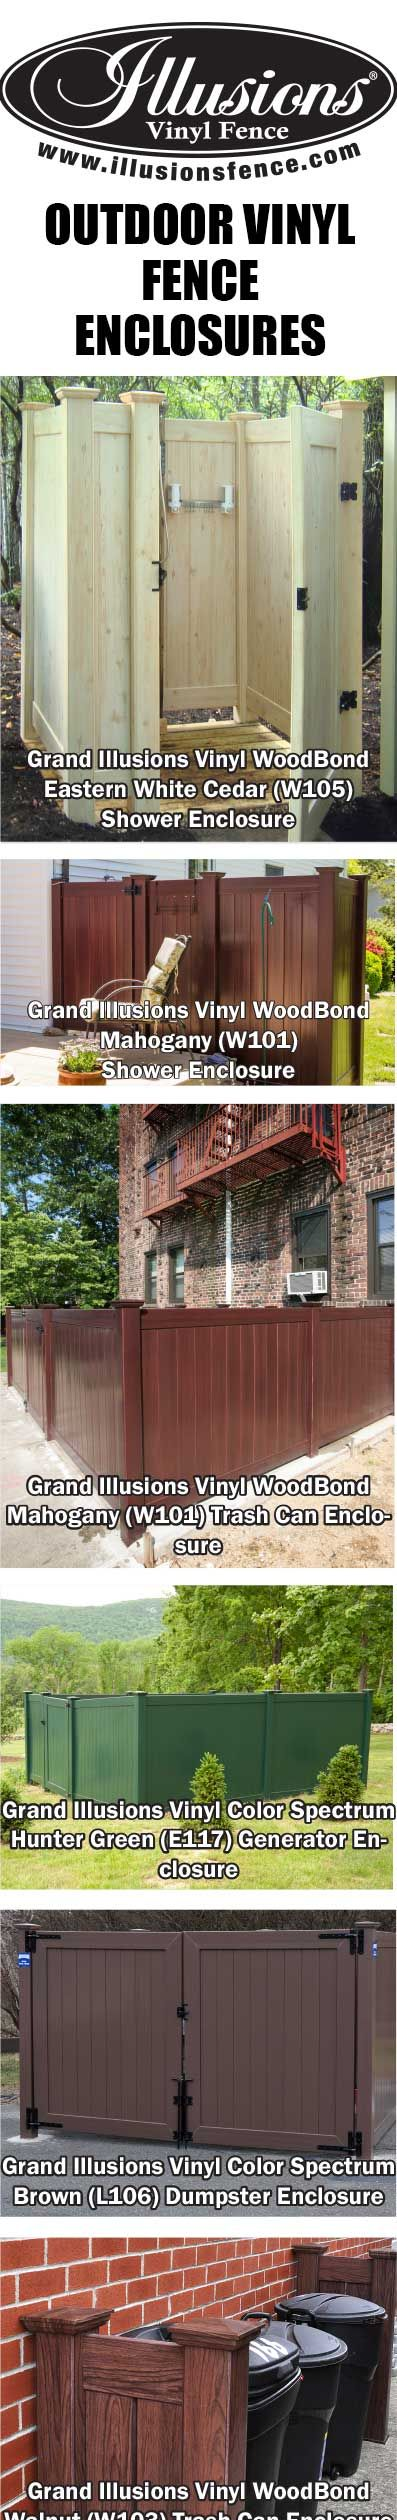 25 best vinyl fence enclosures images on pinterest illusions outdoor shower enclosures garbage can enclosures and so many other uses for grand illusions vinyl fence baanklon Image collections